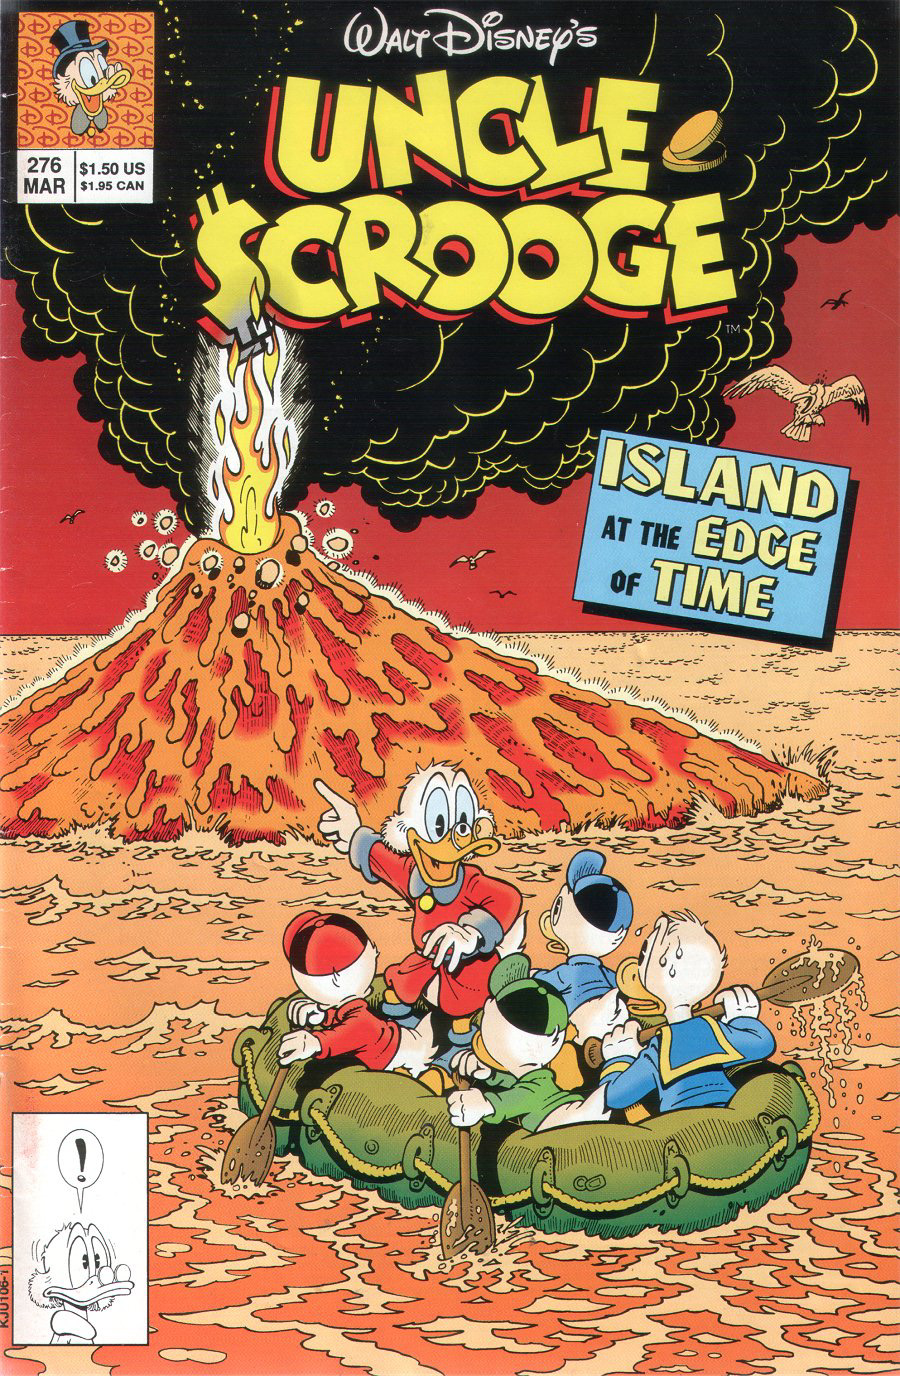 Uncle Scrooge (1953) Issue #276 #276 - English 1